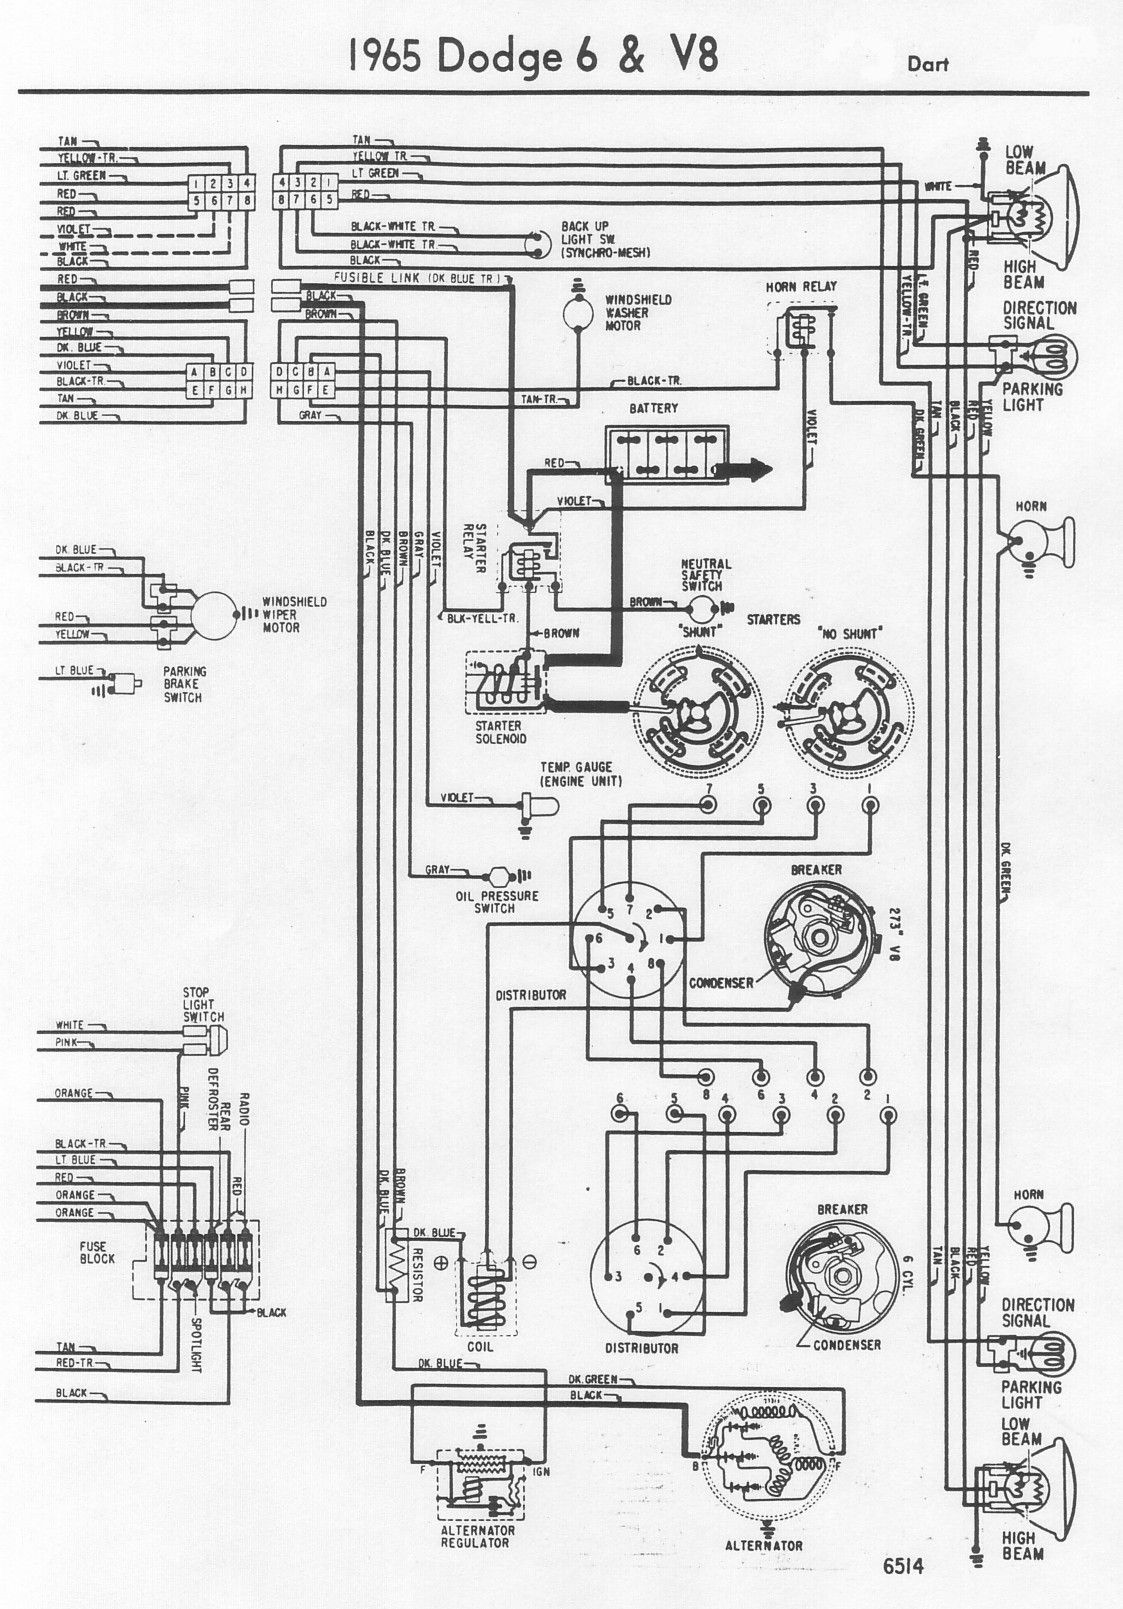 small resolution of 1965 dodge wiring diagram wiring diagram show 1965 dodge coronet wiring diagram